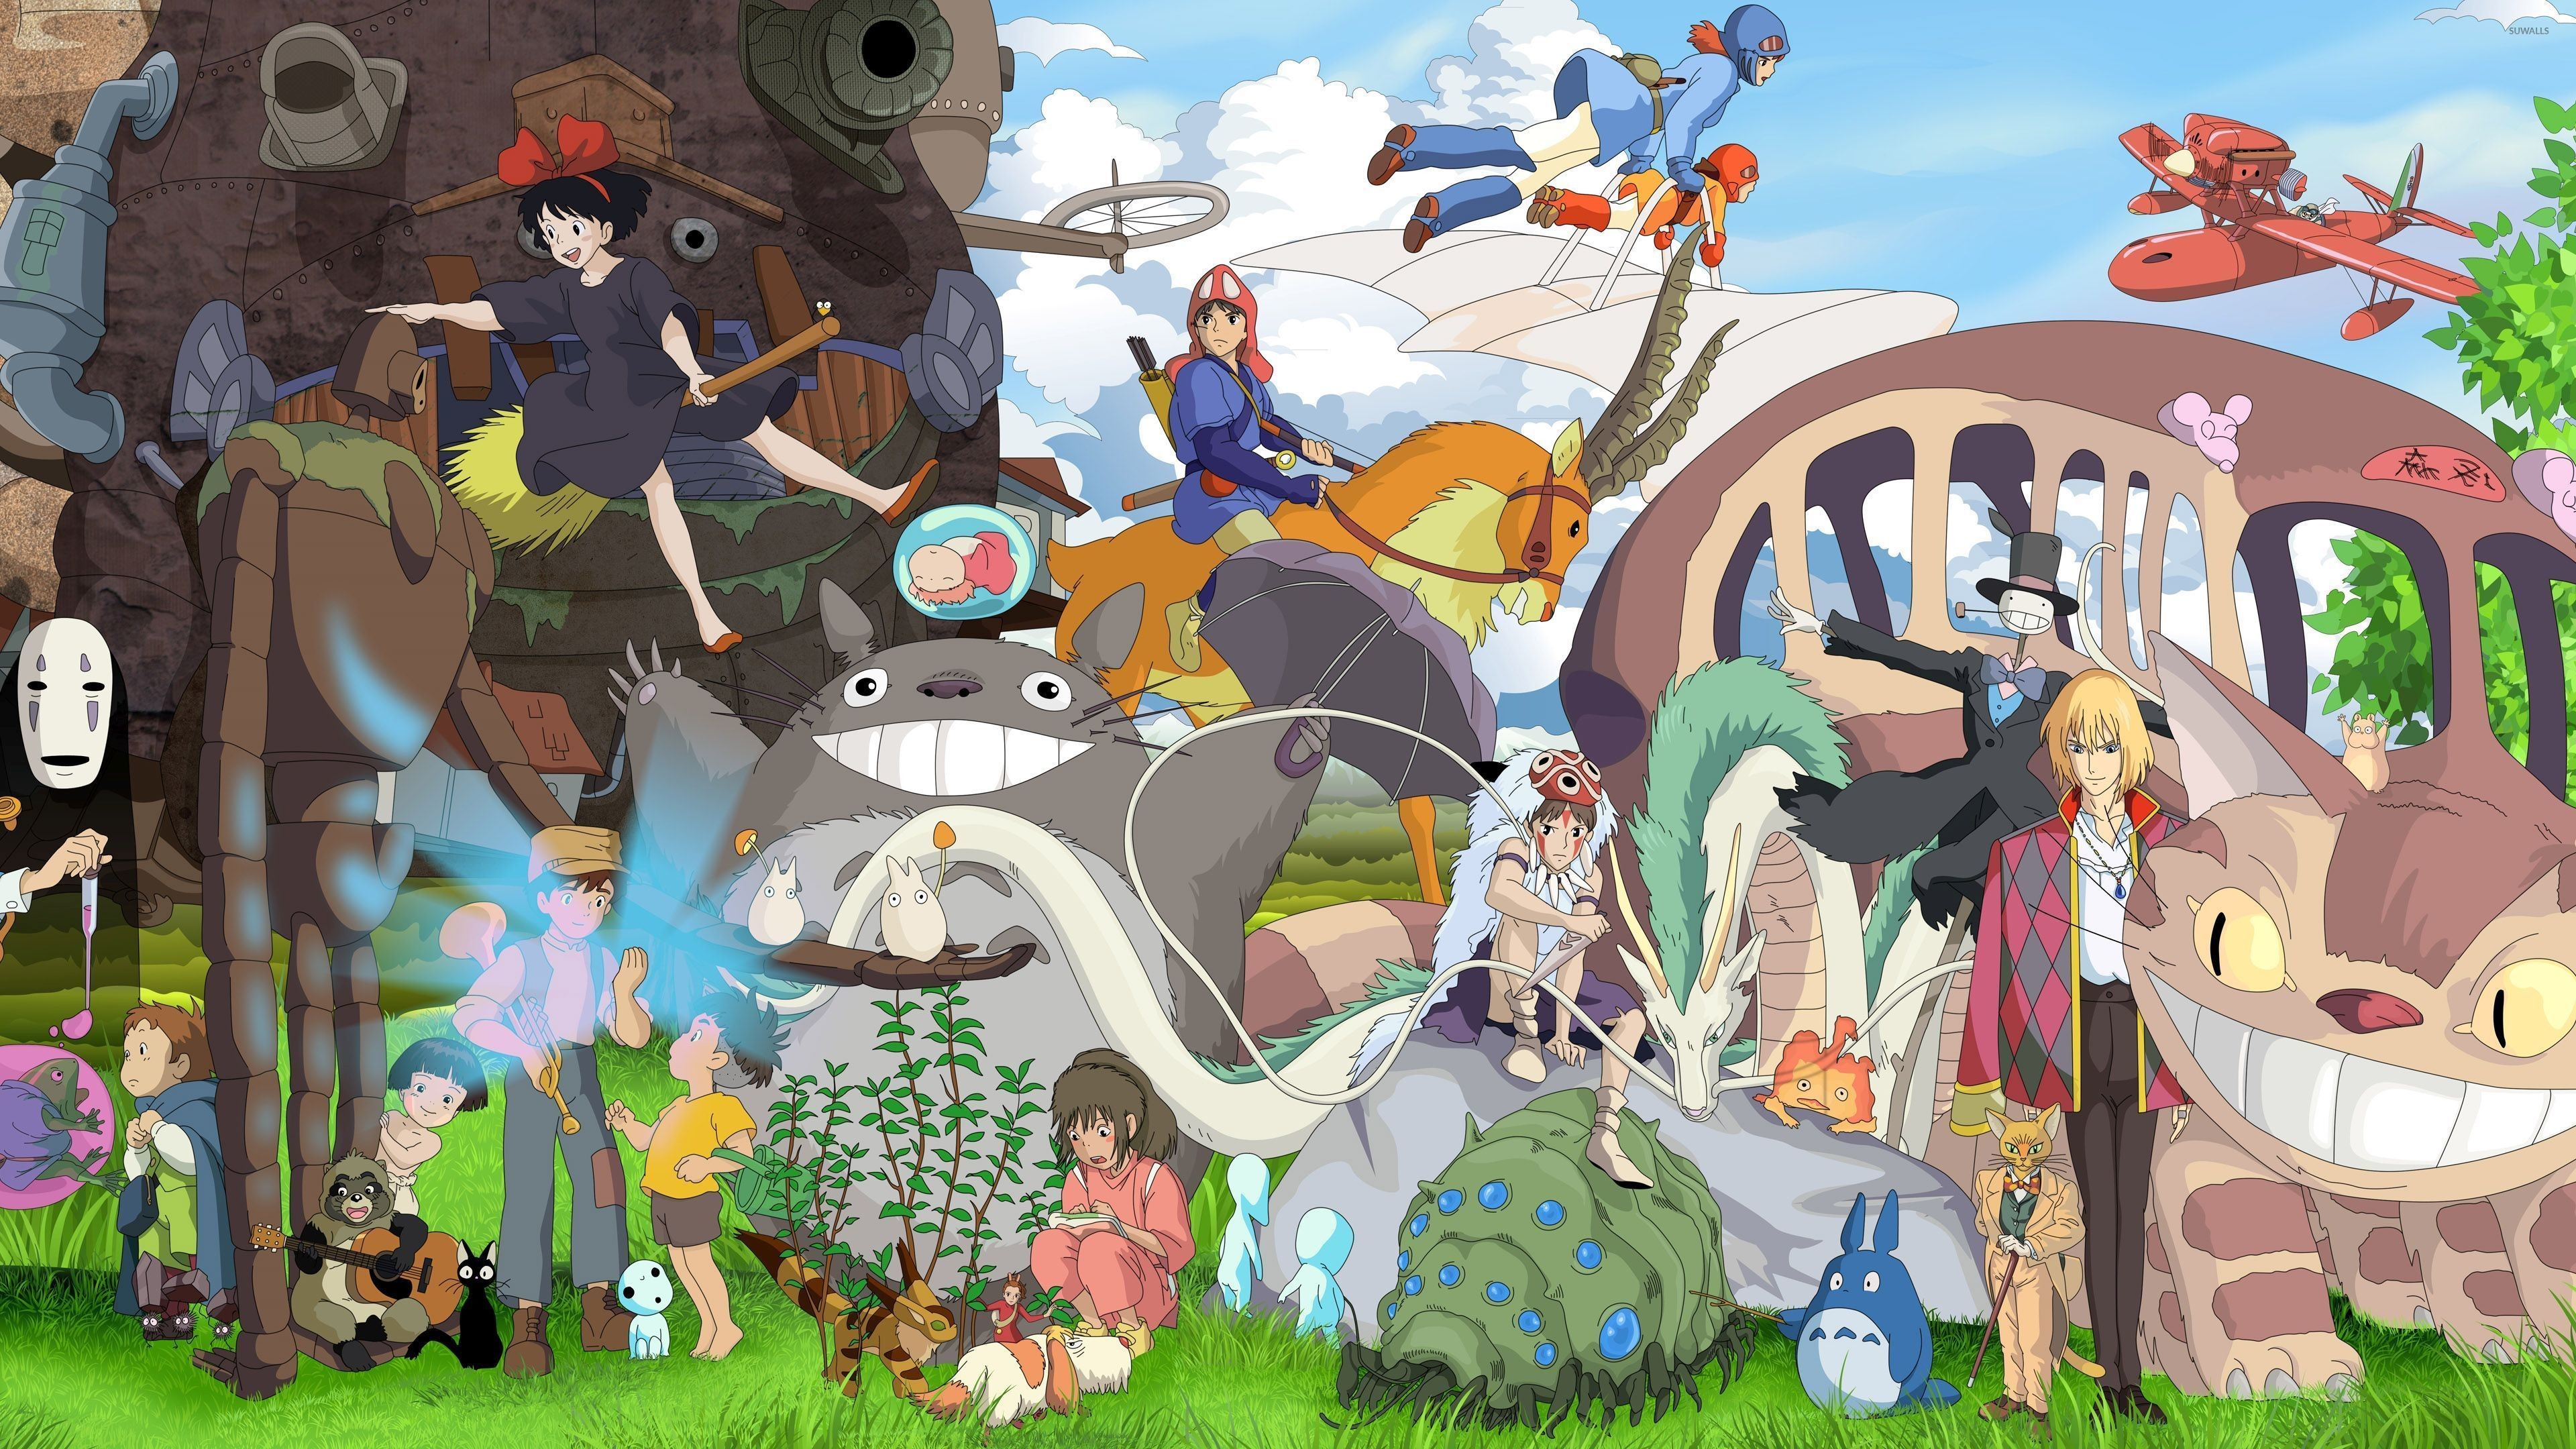 3840x2160  Studio Ghibli characters wallpaper - Anime wallpapers - #36913